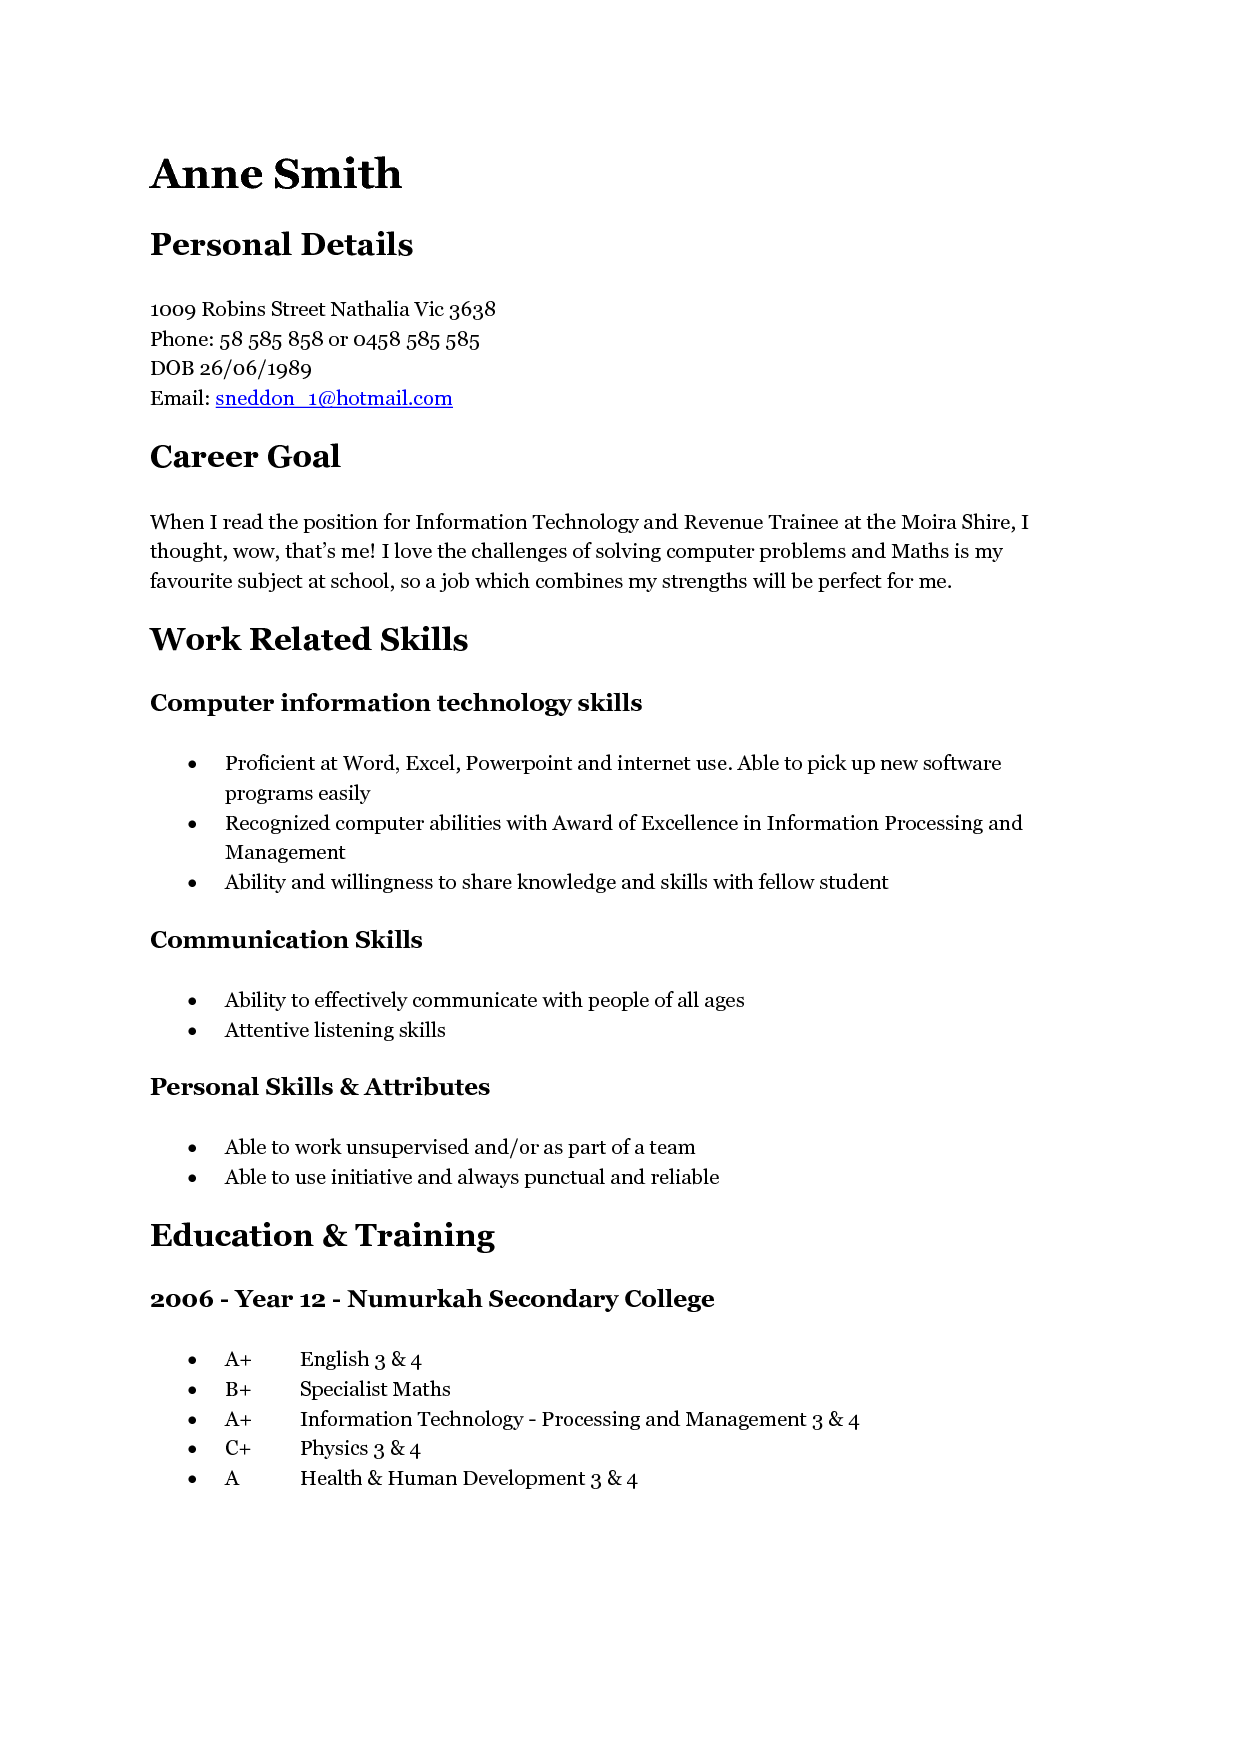 resume templates for teens resume resumetemplates teens templates - Resume Templates For Teenagers